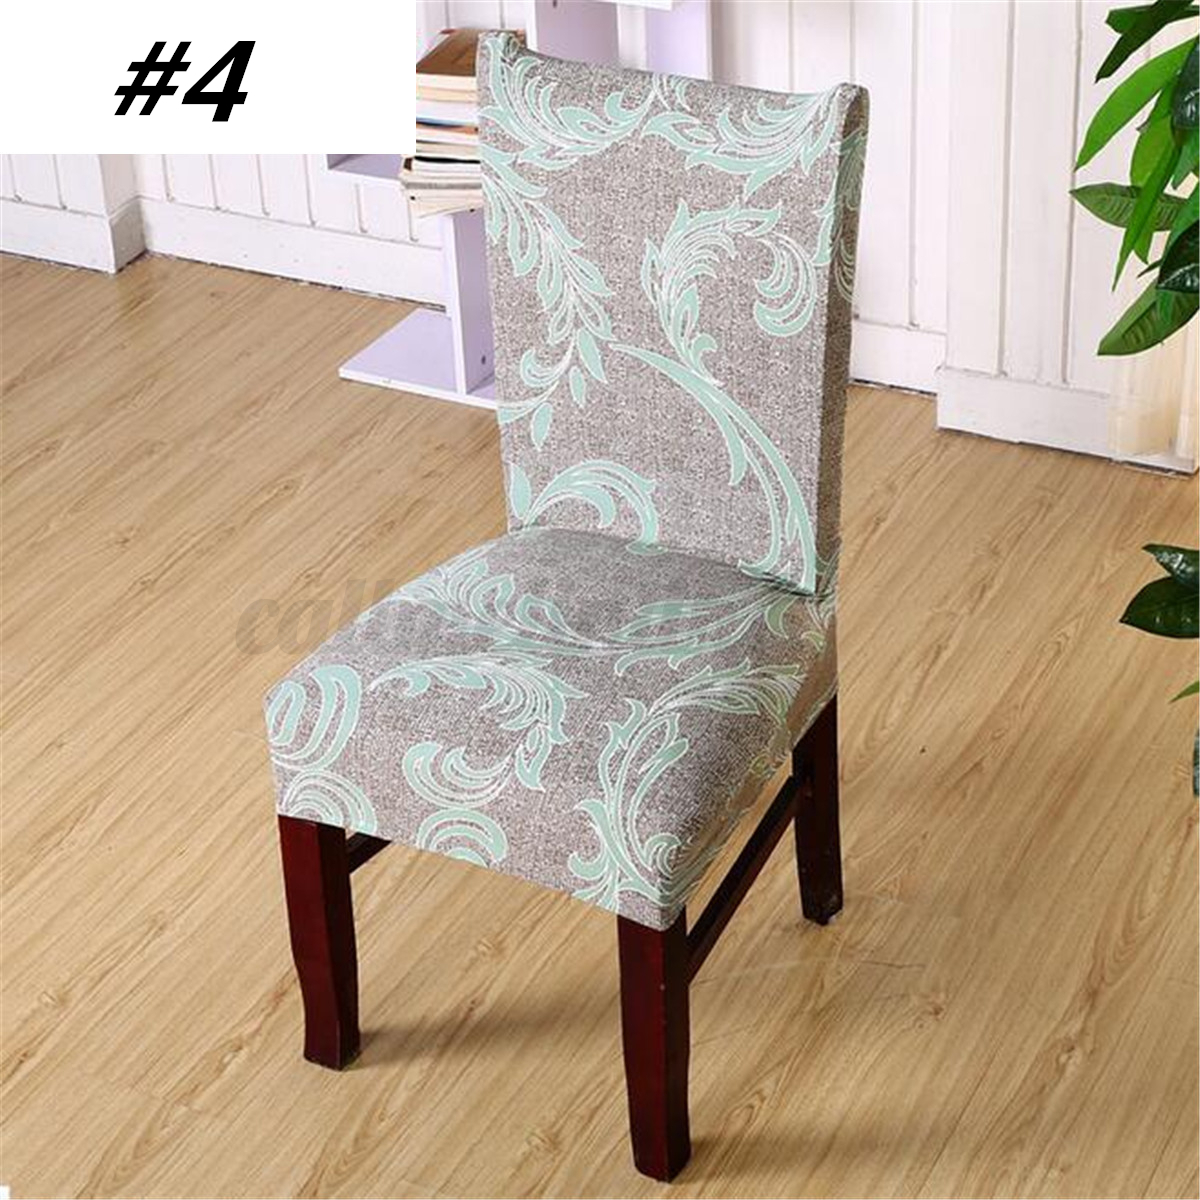 1 4 6 Pcs Stretch Spandex Chair Covers